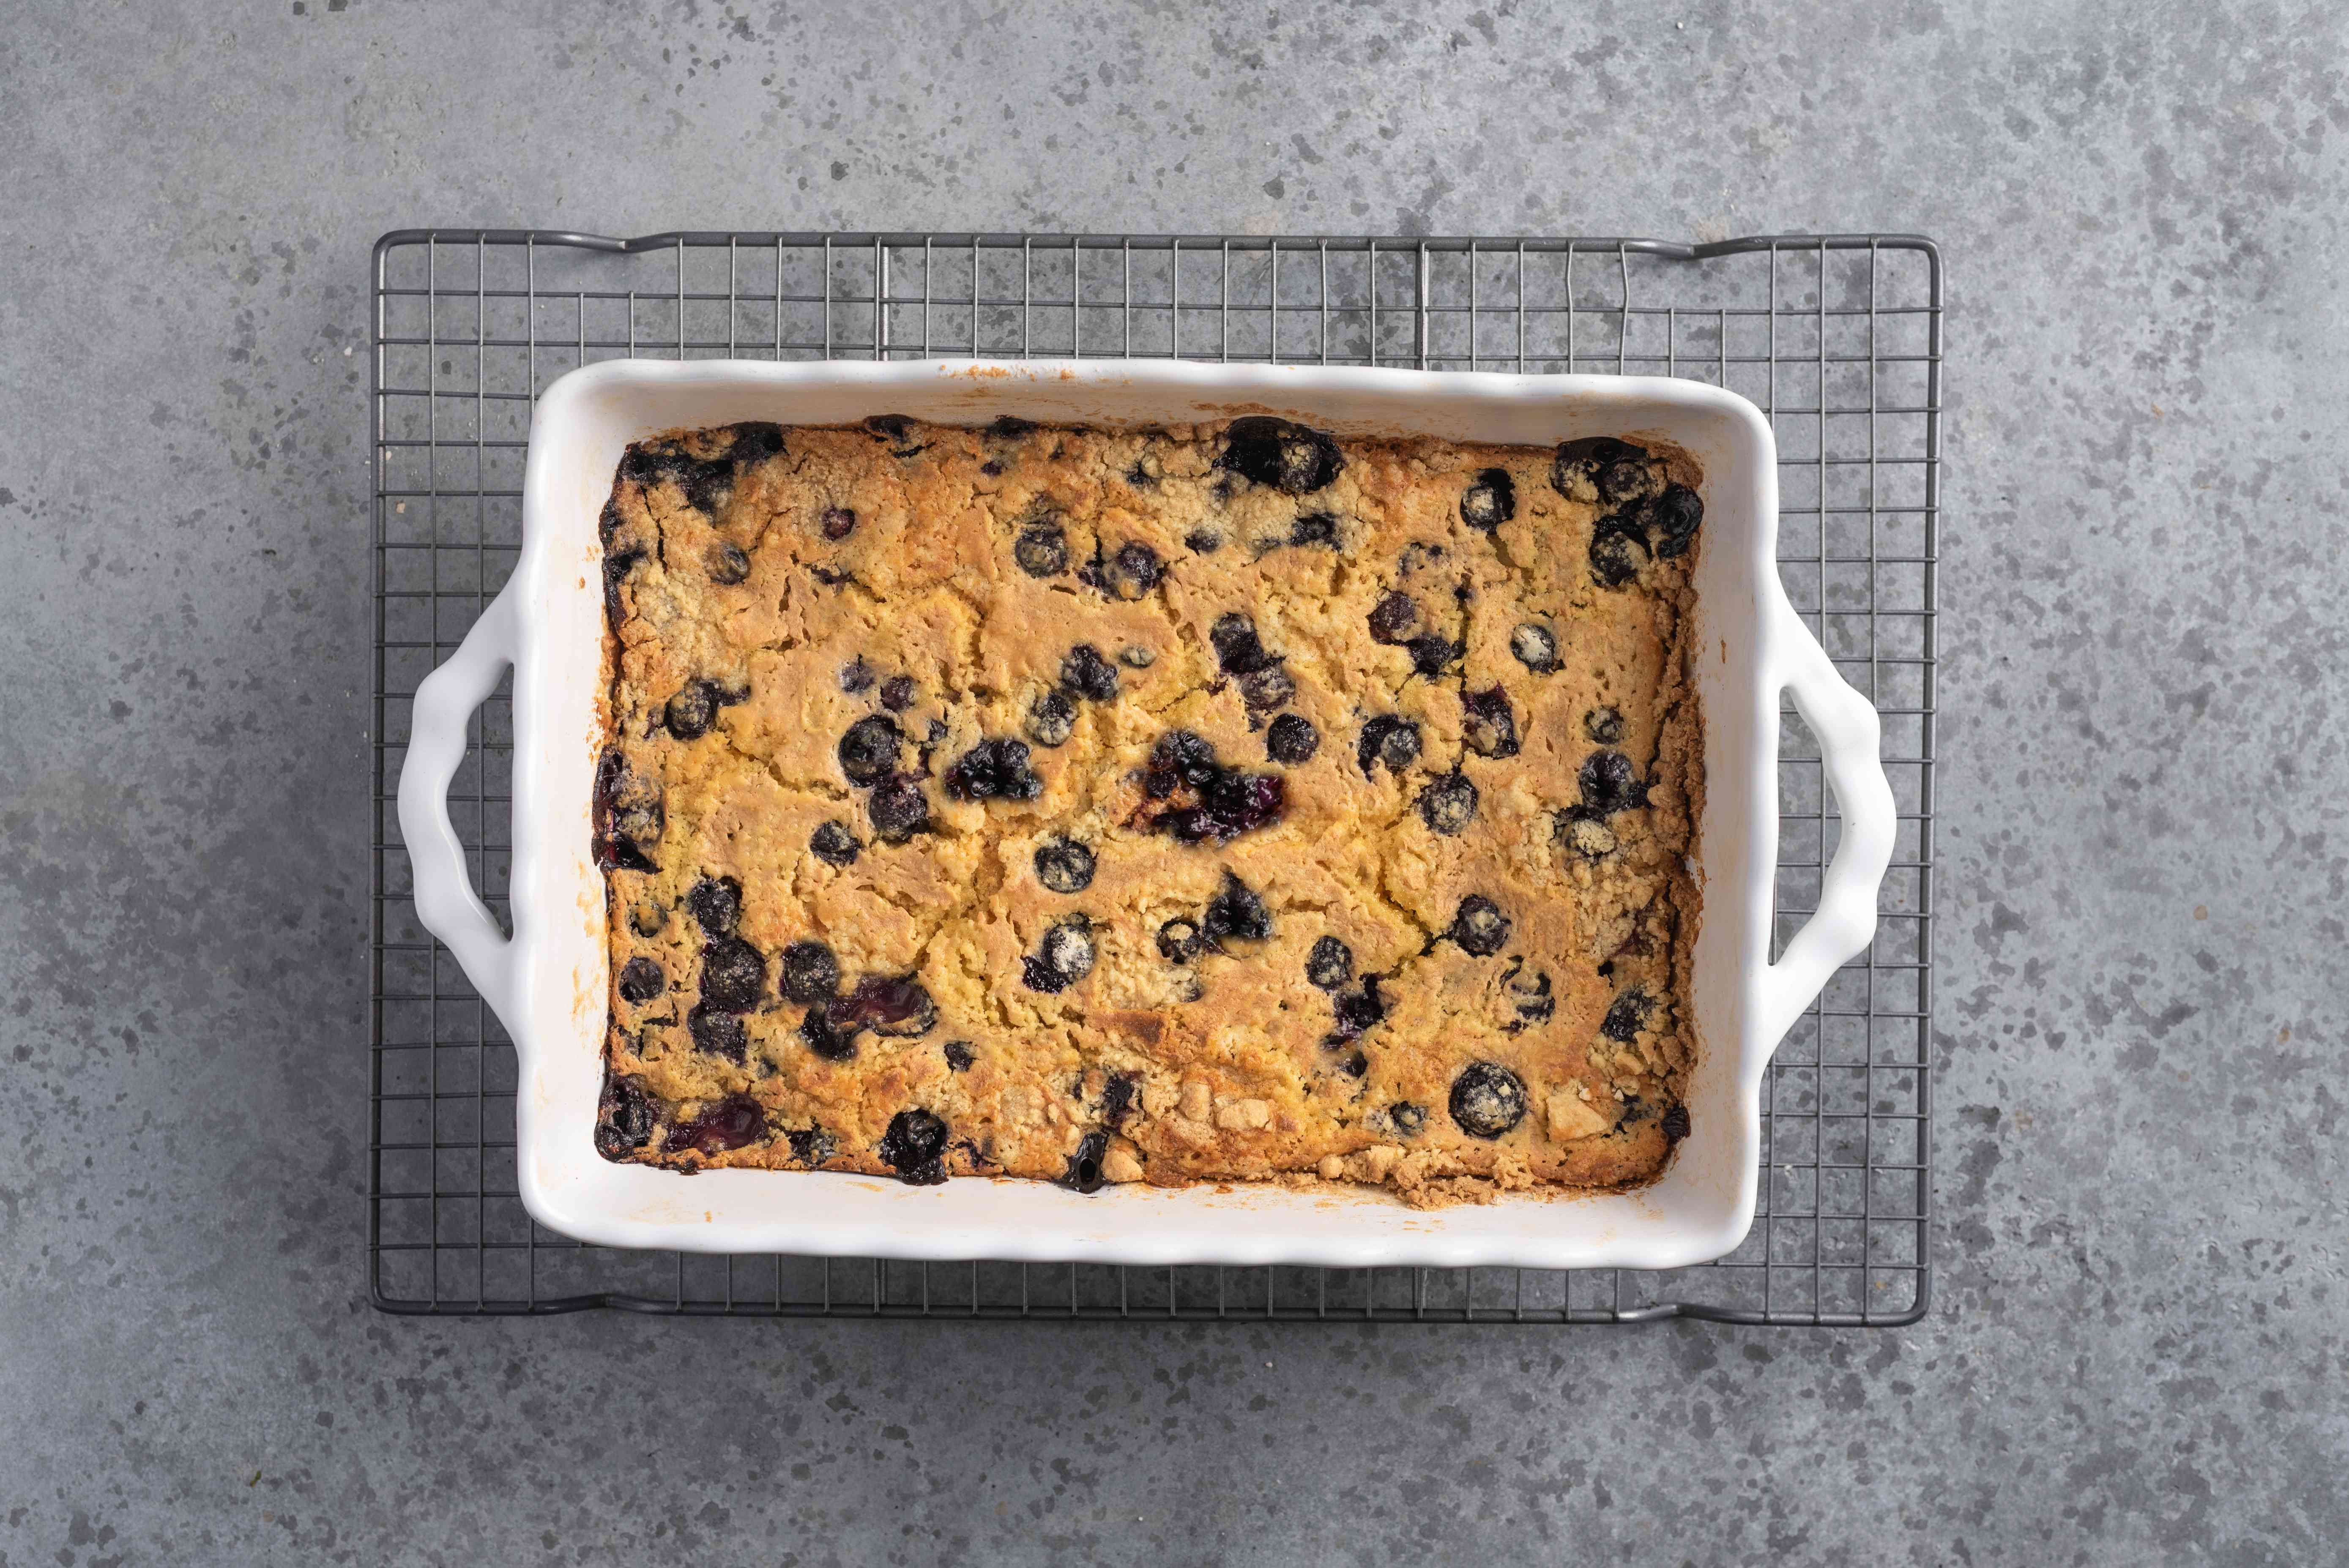 Blueberry Dump Cake in a baking dish on a cooling rack